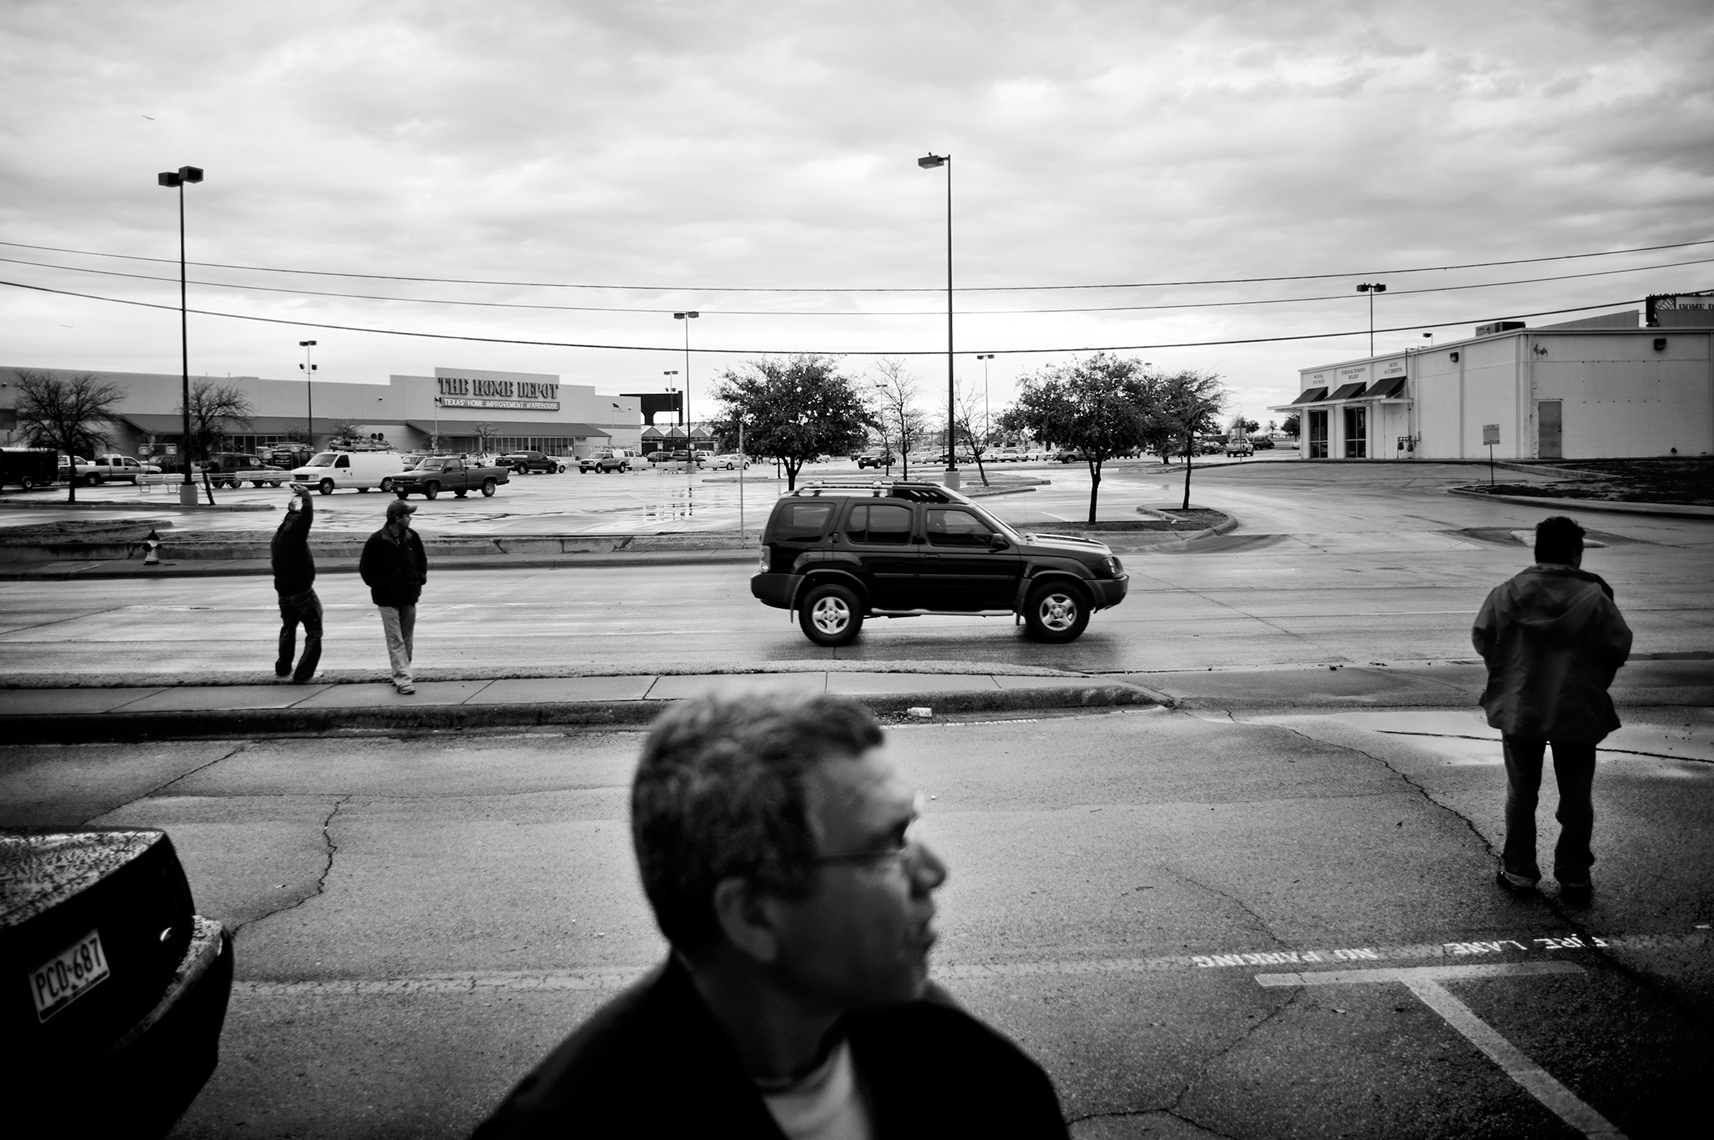 thibodeaux_brandon_immigration_south_texas_00042